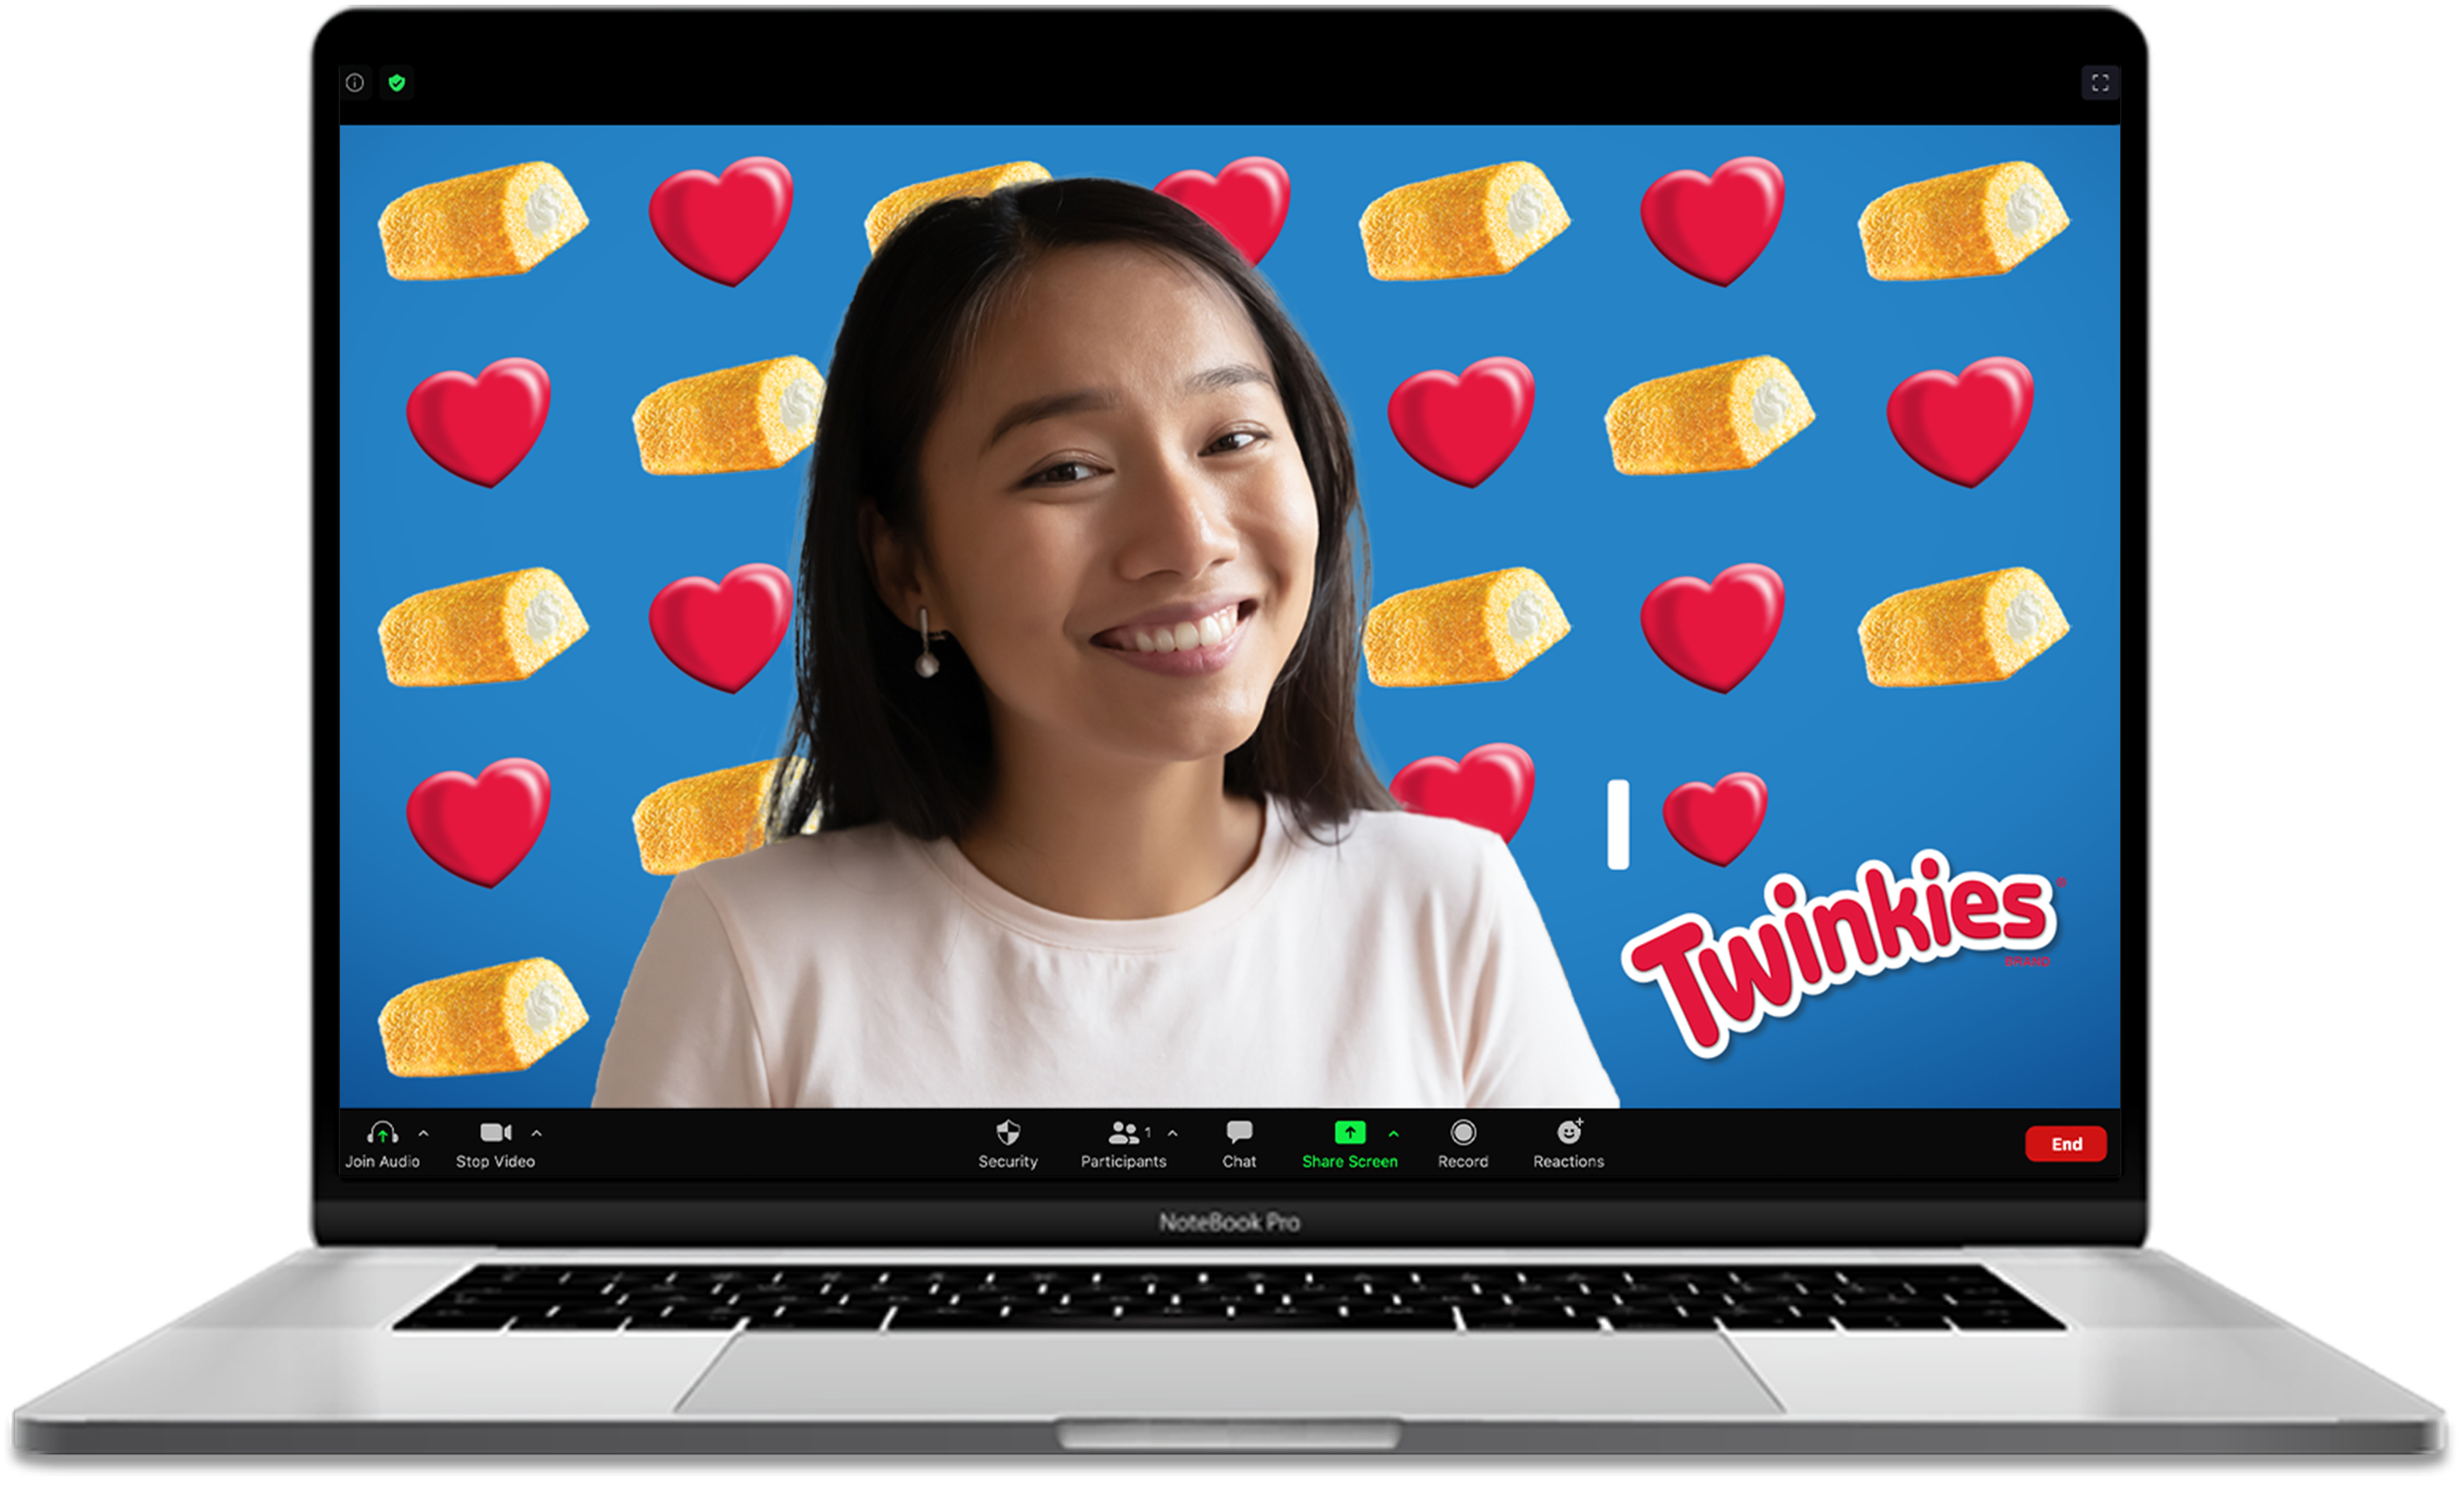 Celebrate National Twinkies Day with New Social Campaign